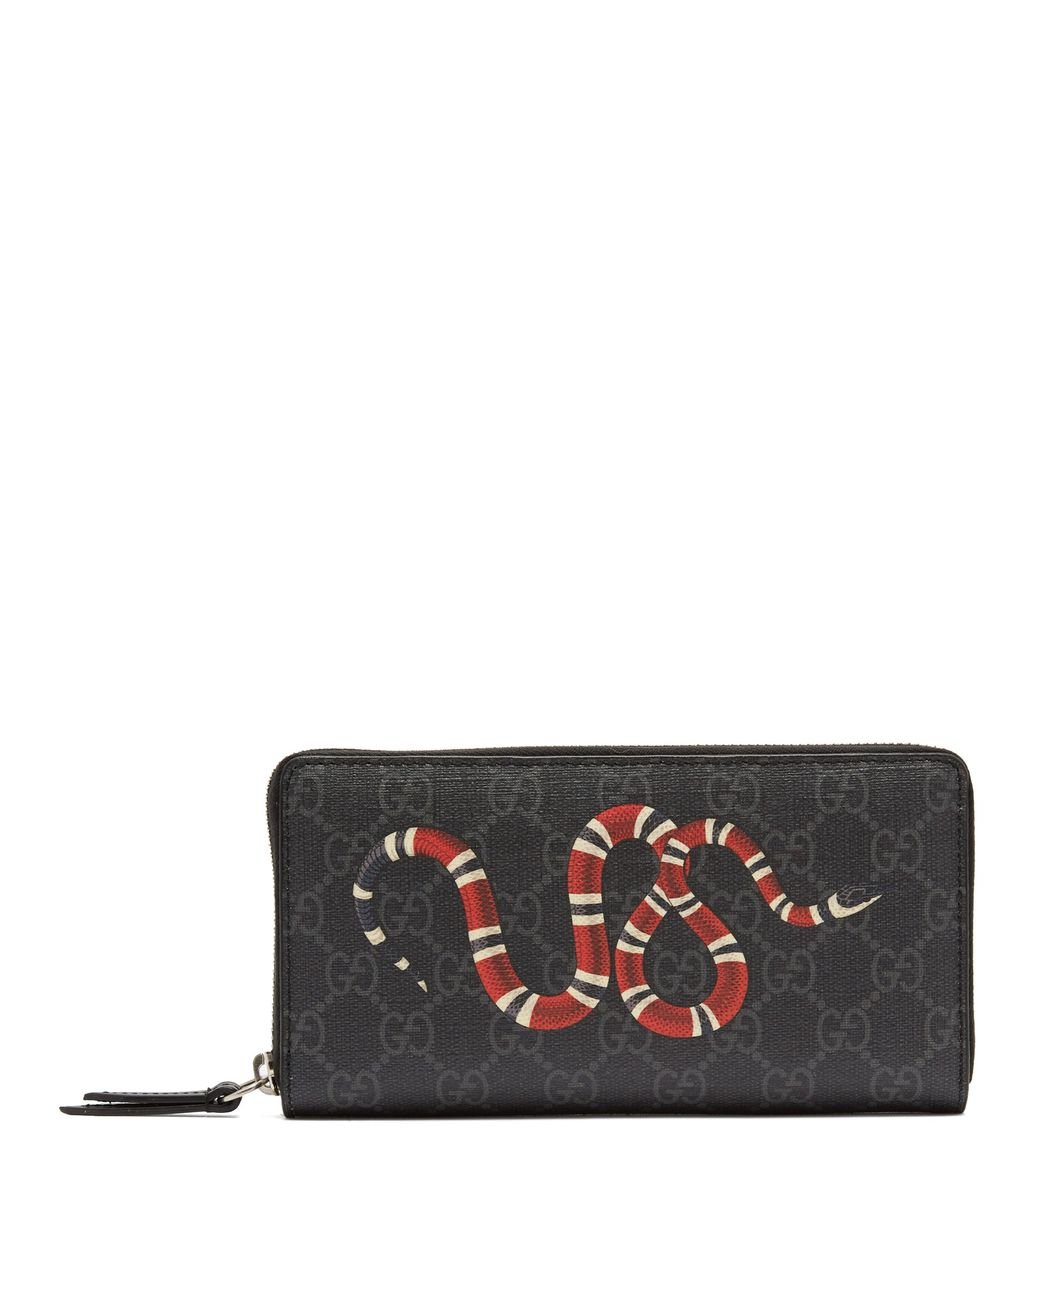 dbc073906bae Gucci Kingsnake Zip Around Leather Wallet in Black for Men - Lyst